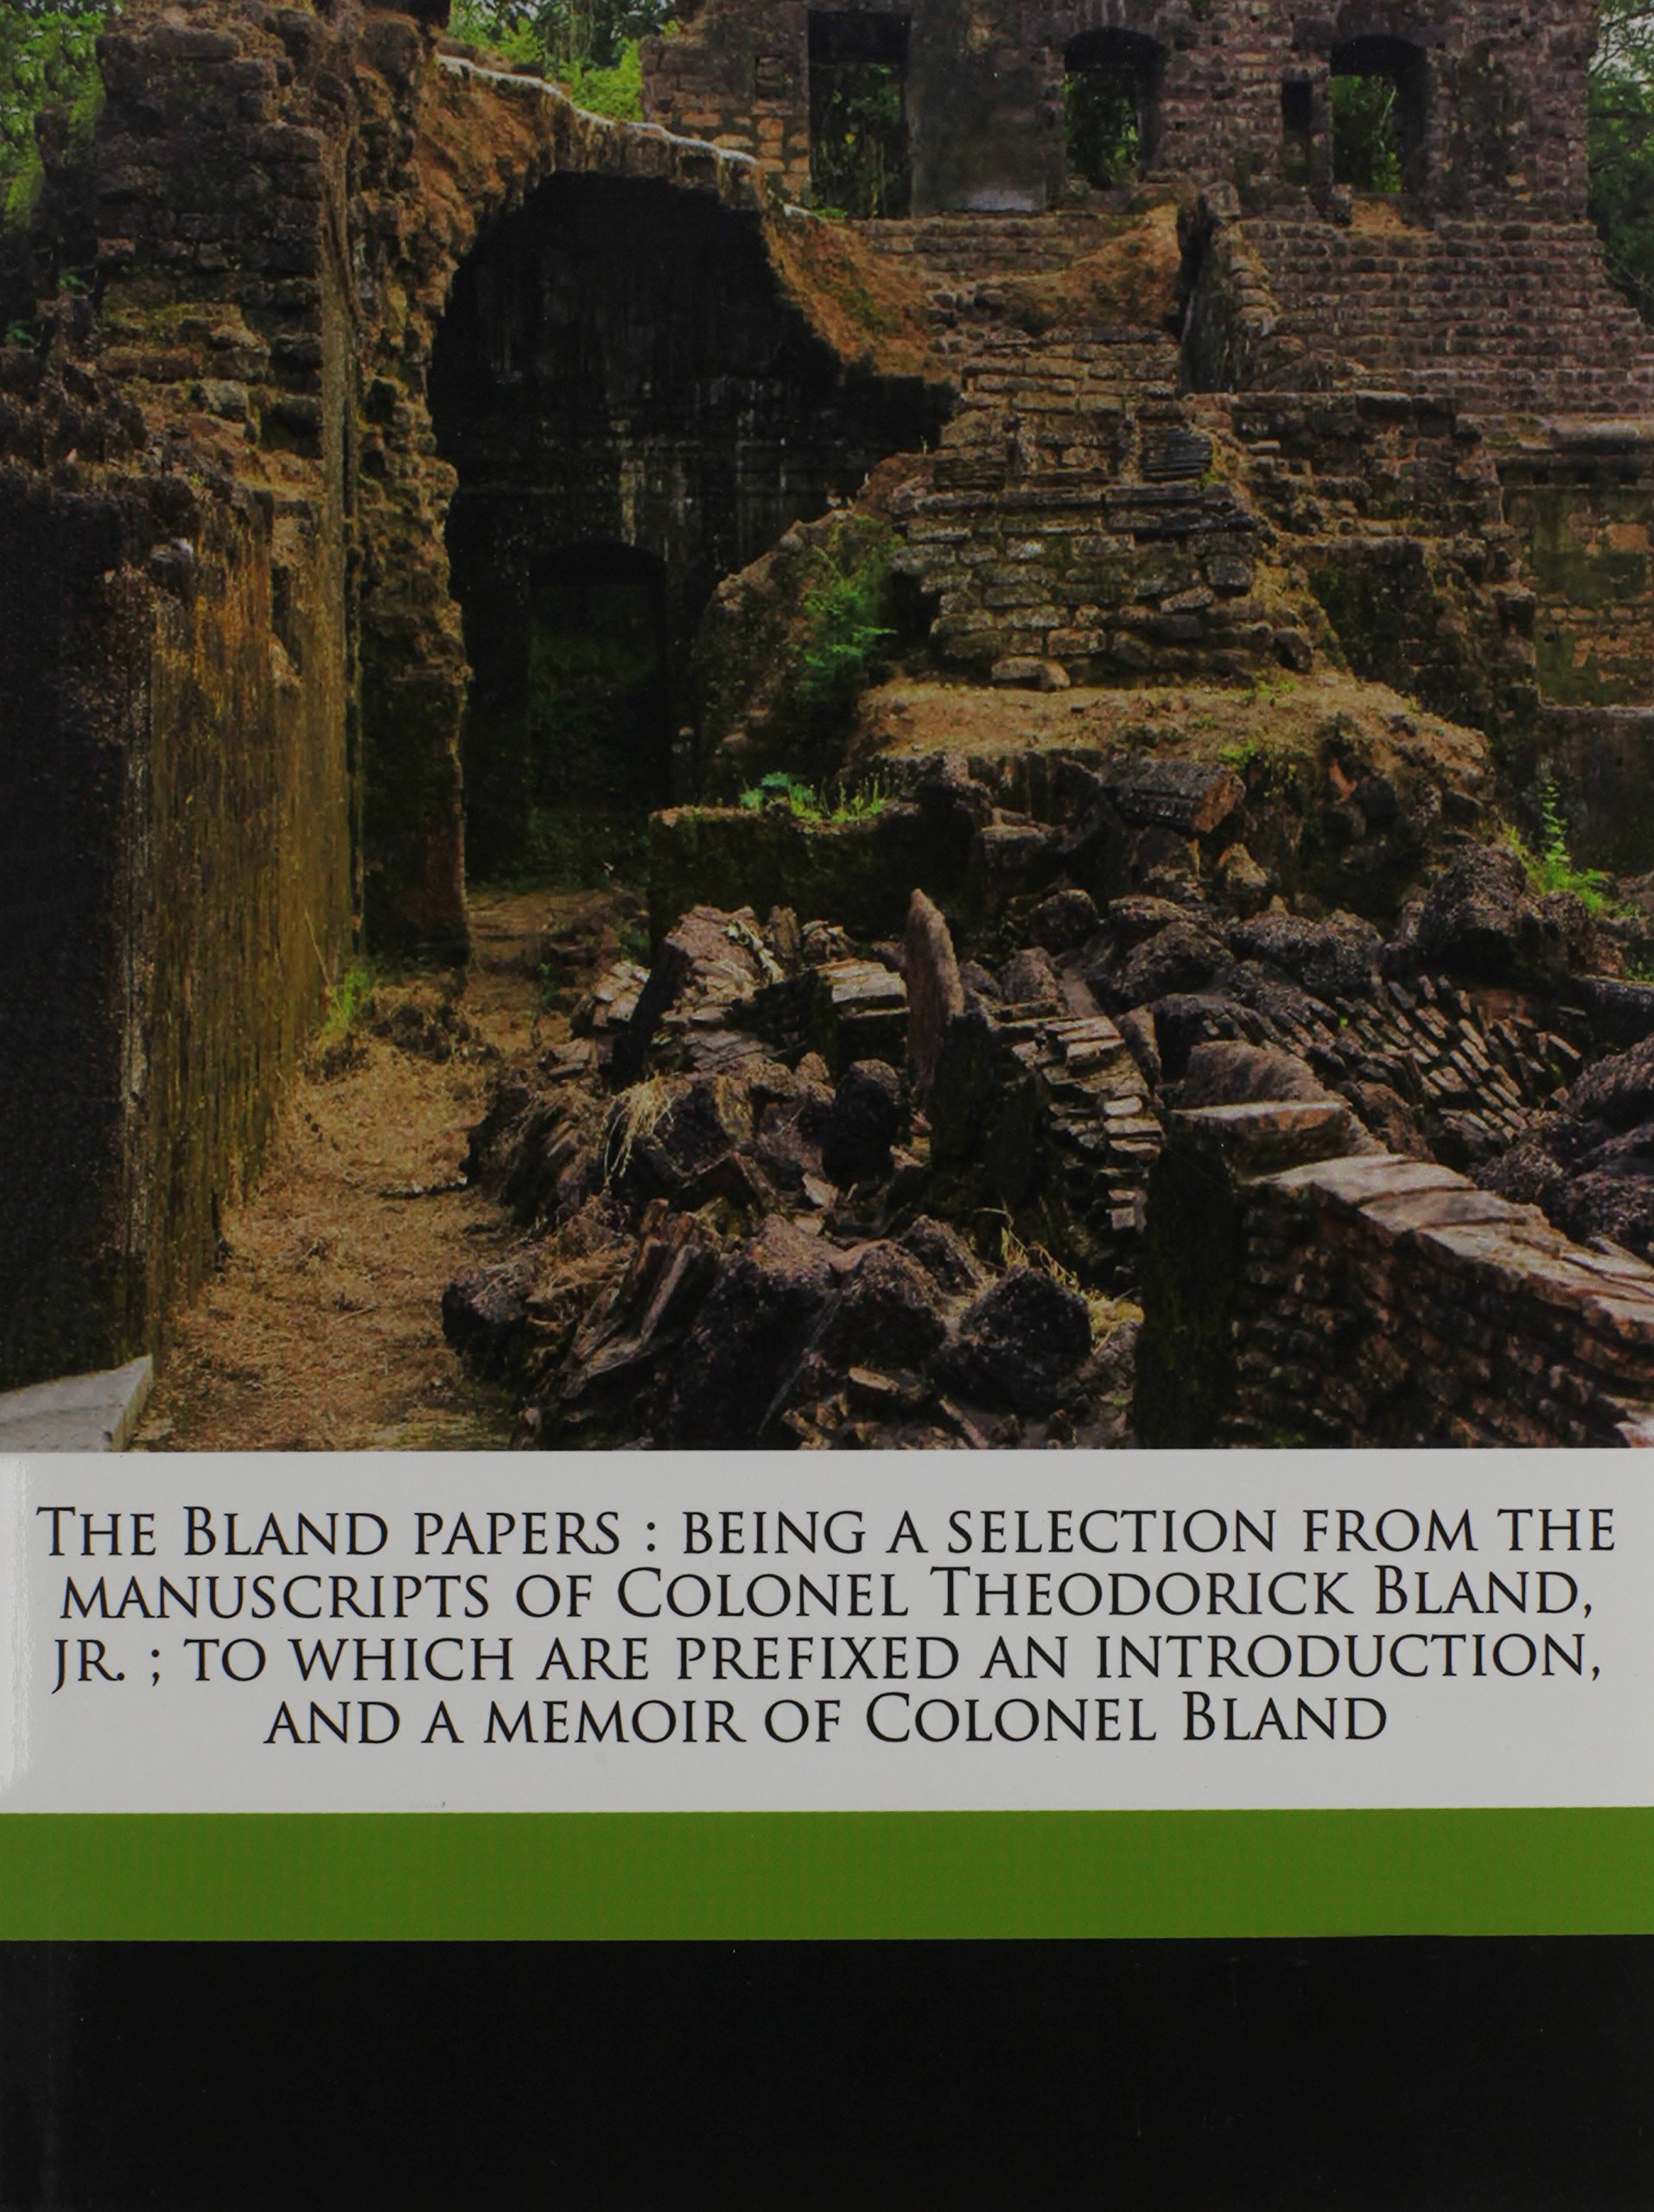 The Bland papers: being a selection from the manuscripts of Colonel Theodorick Bland, jr. ; to which are prefixed an introduction, and a memoir of Colonel Bland Volume 1-2 PDF